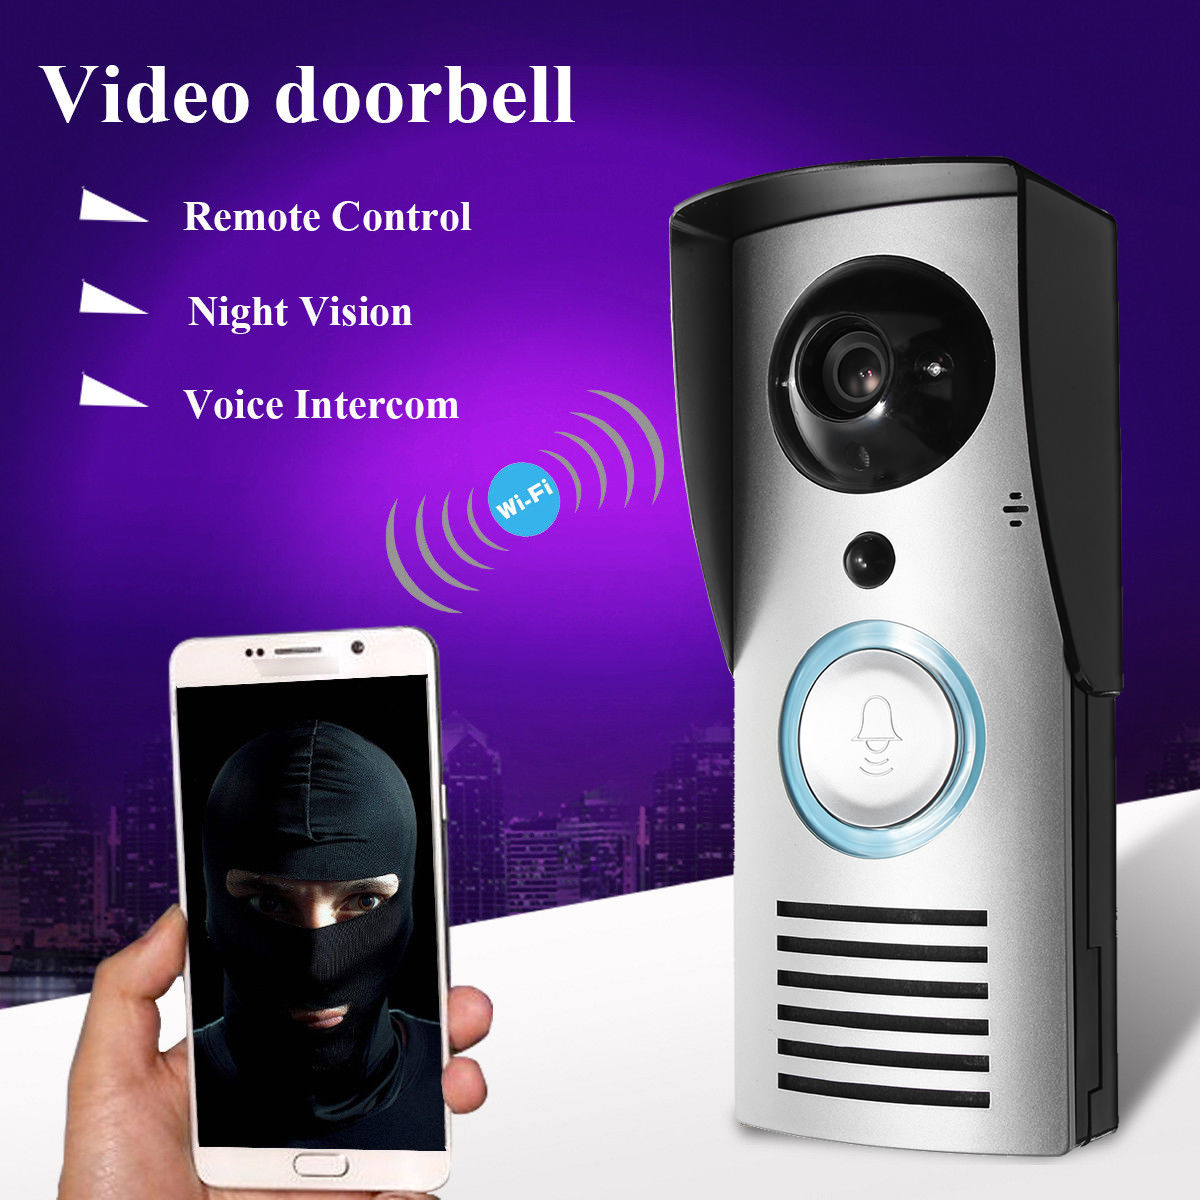 HD 720P Waterproof Wireless WiFi Video DoorBell Smart Camera Remote Unlocking,P2P Cloud Motion Detection Sensor Alarm Door Monitor,Onvif Two-Way Audio,PIR Night Vision Onvif